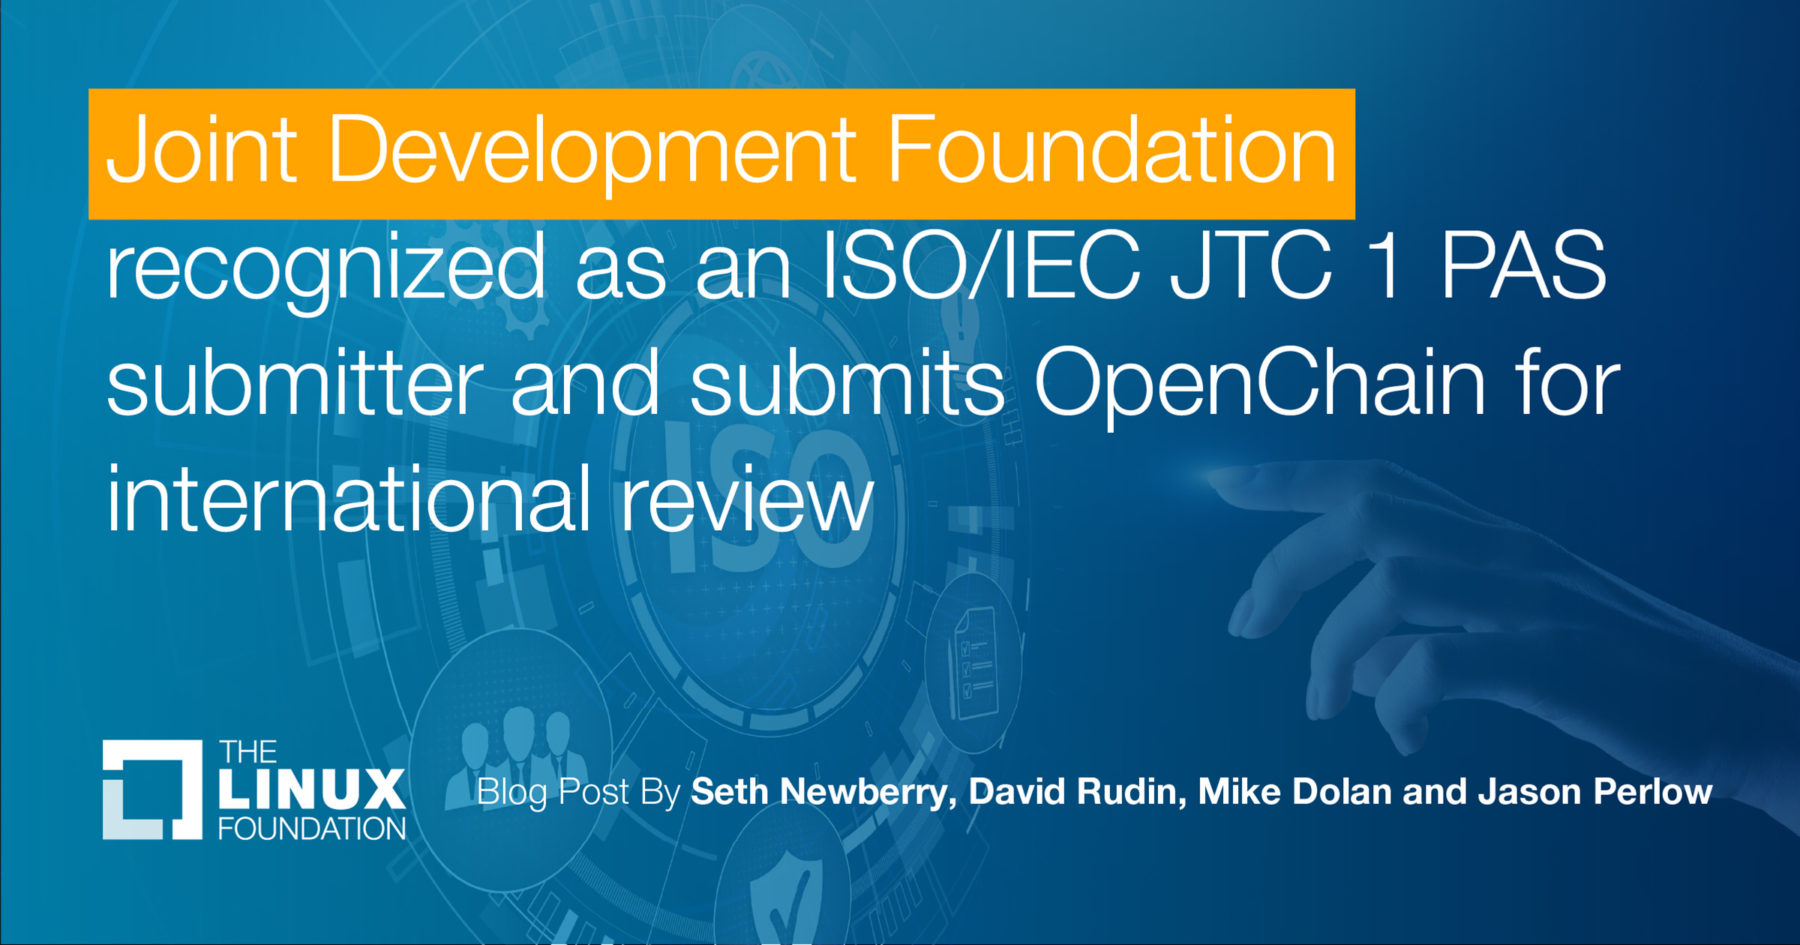 Joint Development recognized as ISO/IEC JTC 1 PAS Submittor